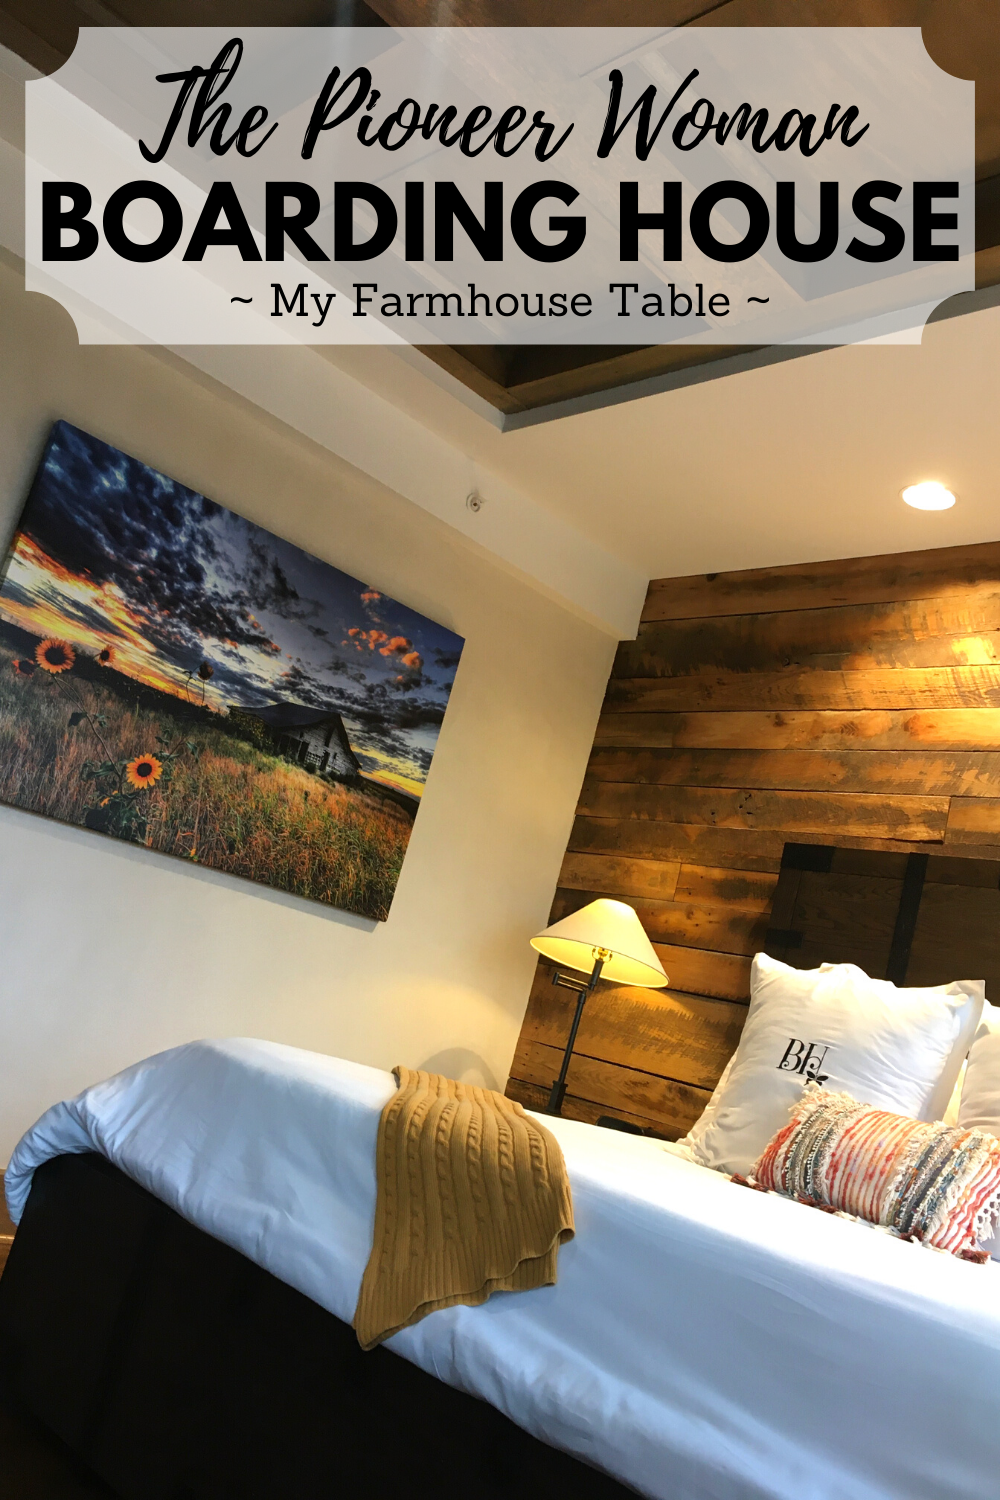 Pioneer Woman Boarding House Reservations How to get a reservation at the PW Boarding House hotel in Pawhuska Oklahoma Boutique Western Hotel Amenities Room Service Individual Rooms My Farmhouse Table